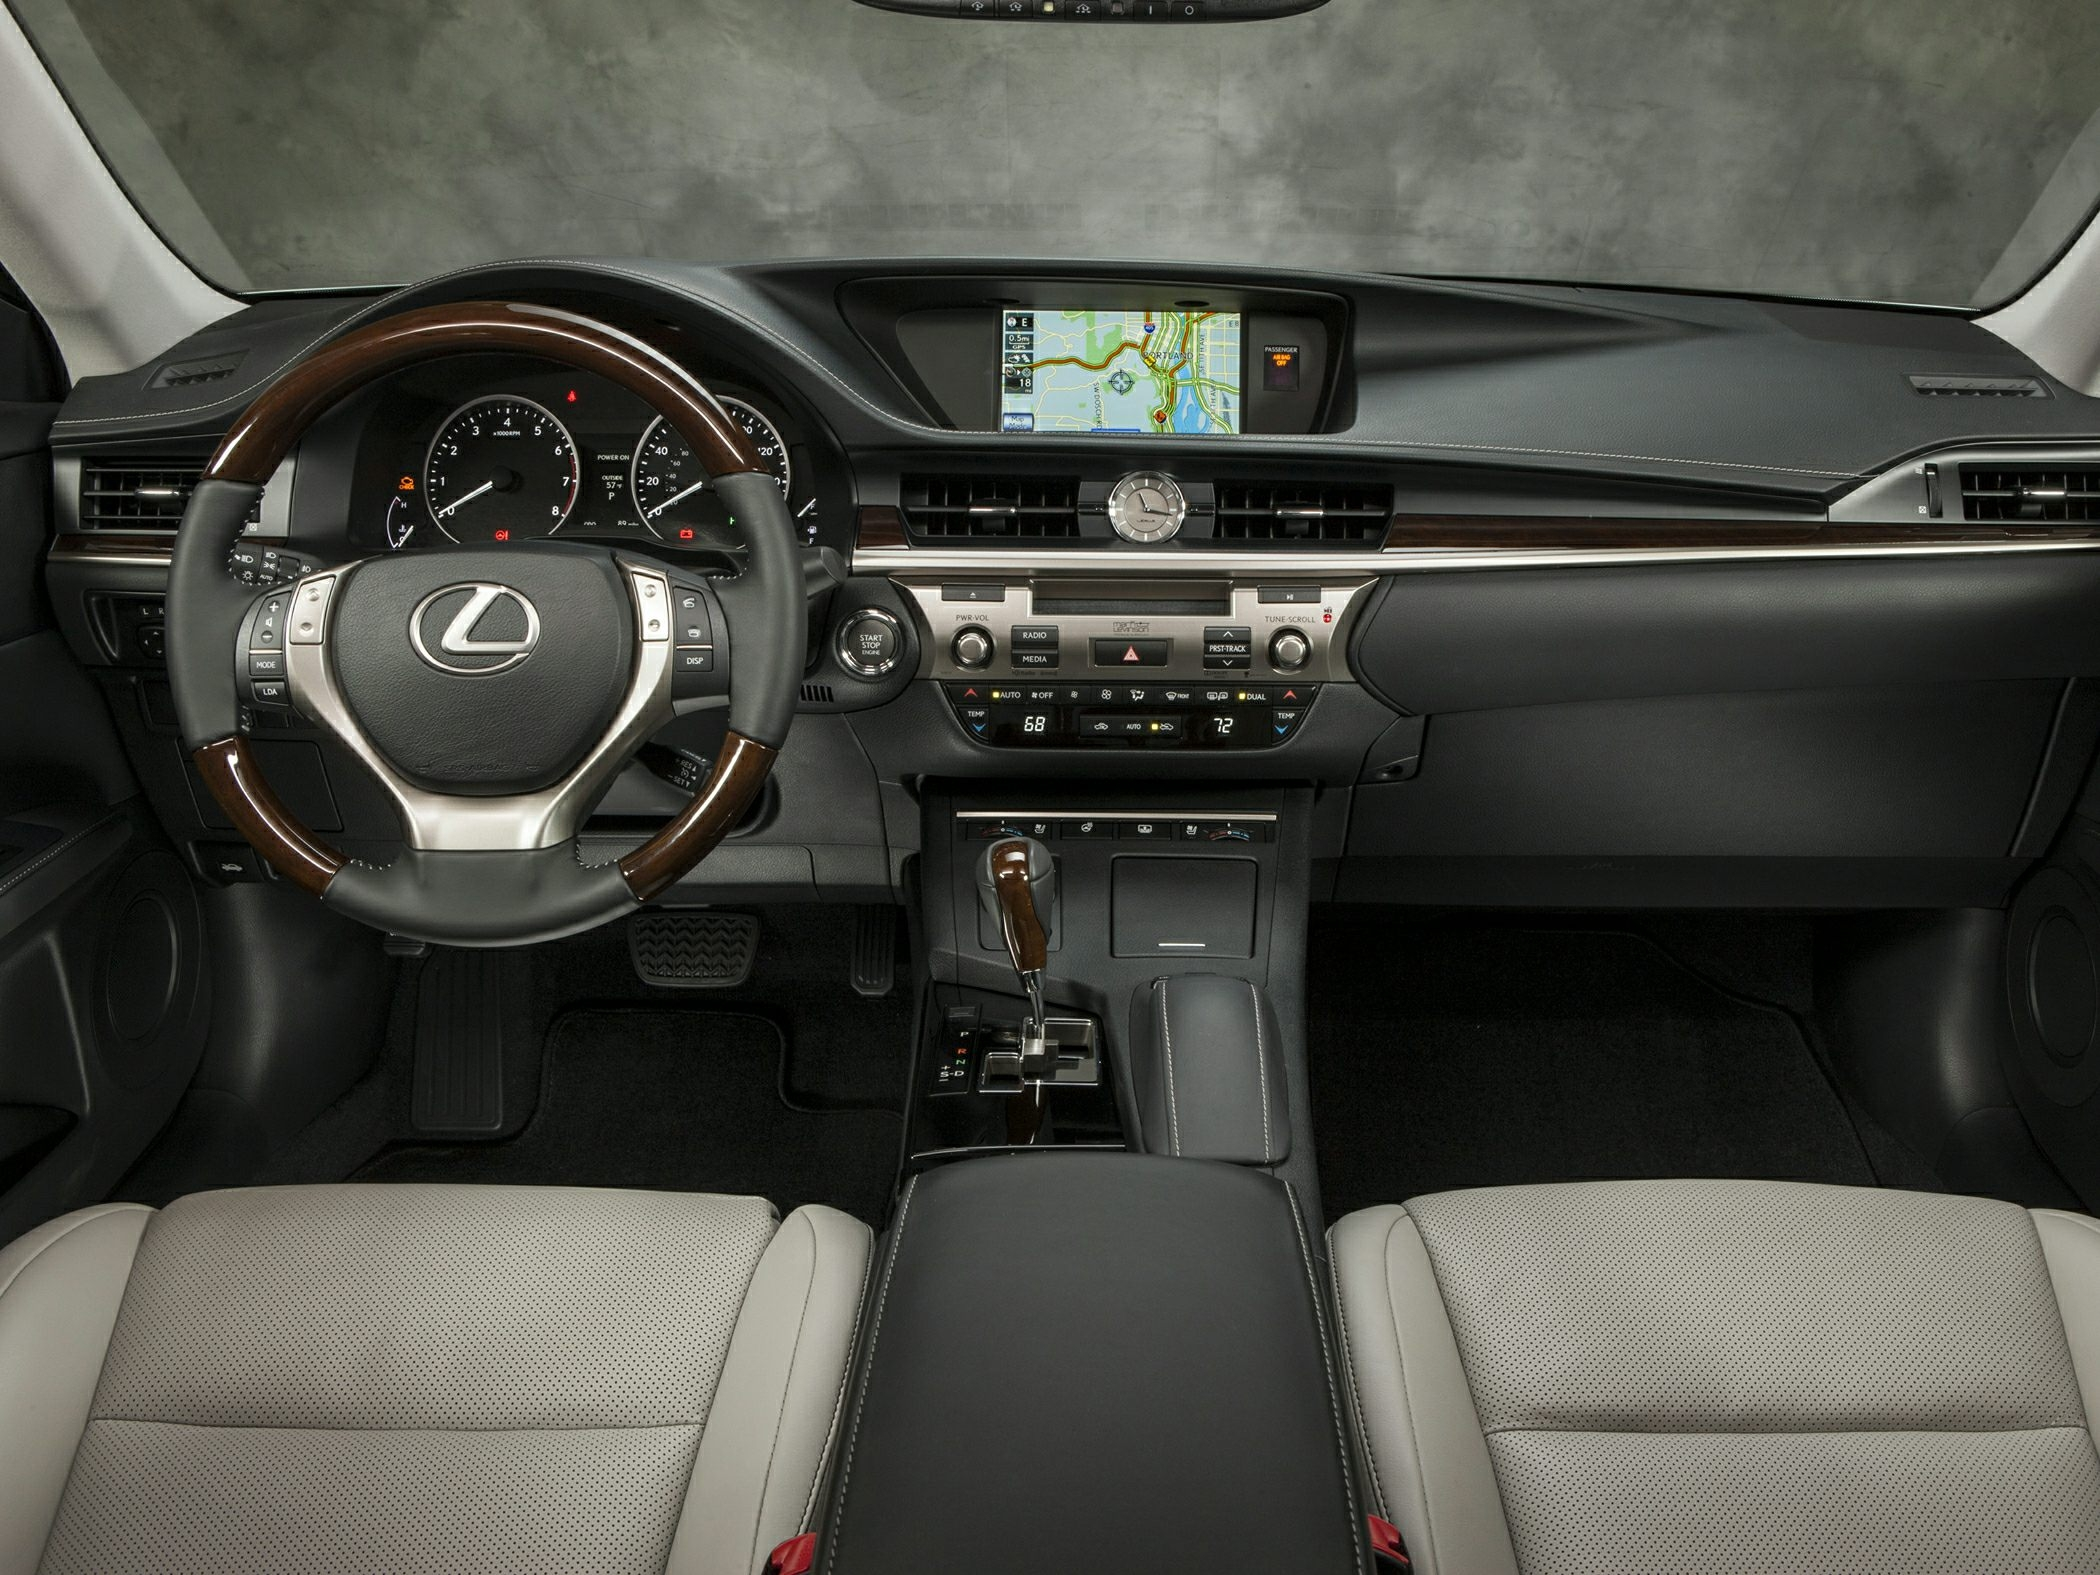 2014 lexus es 350   price, photos, reviews & features 2014 lexus es 350 invoice price